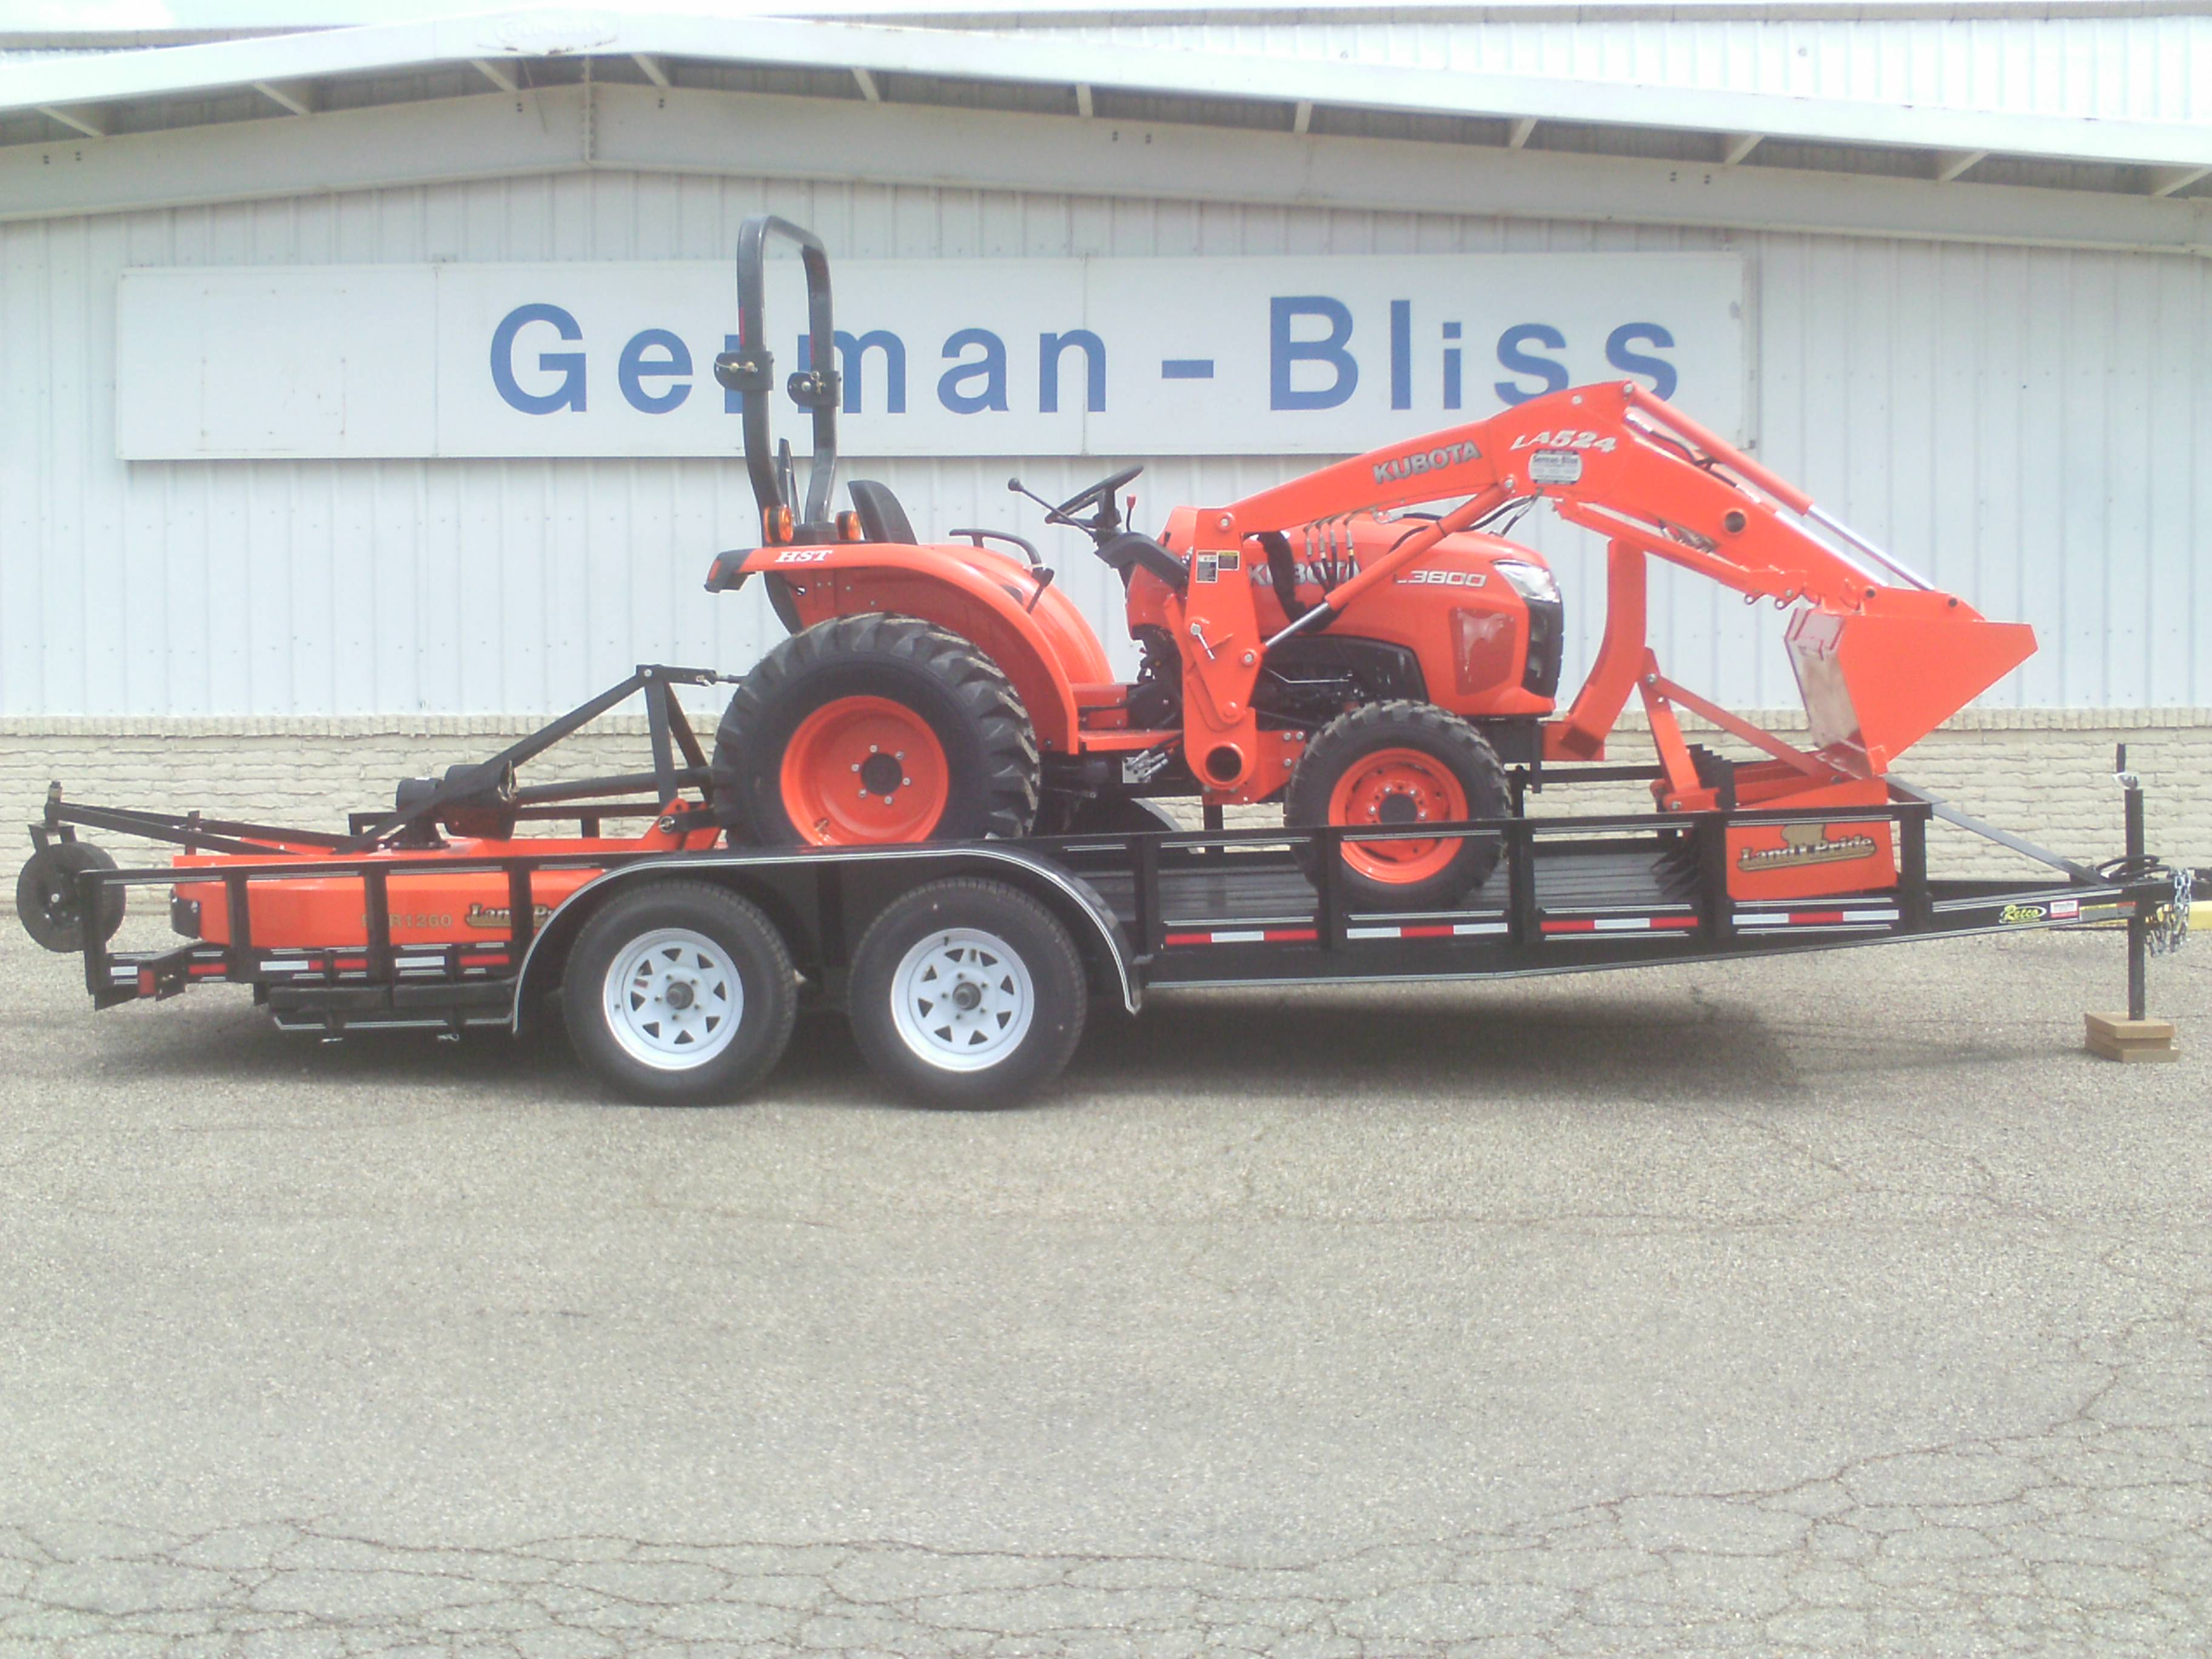 Tractor Trailer Driveline : B series kubota package deals from german bliss equipment